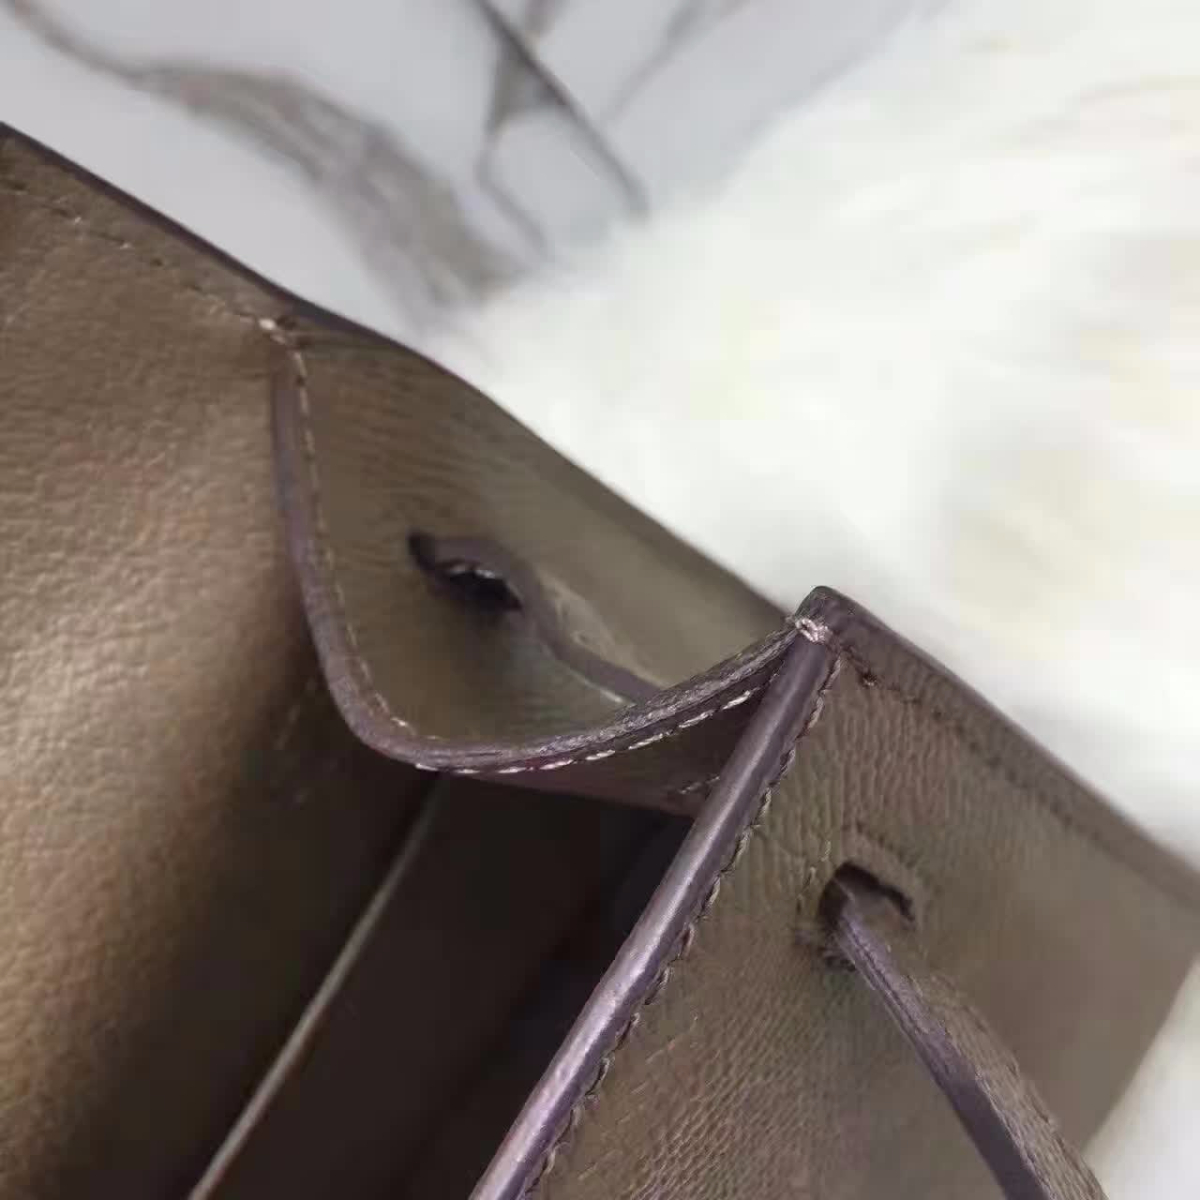 Hermes Mini Kelly Bag hhem591_6